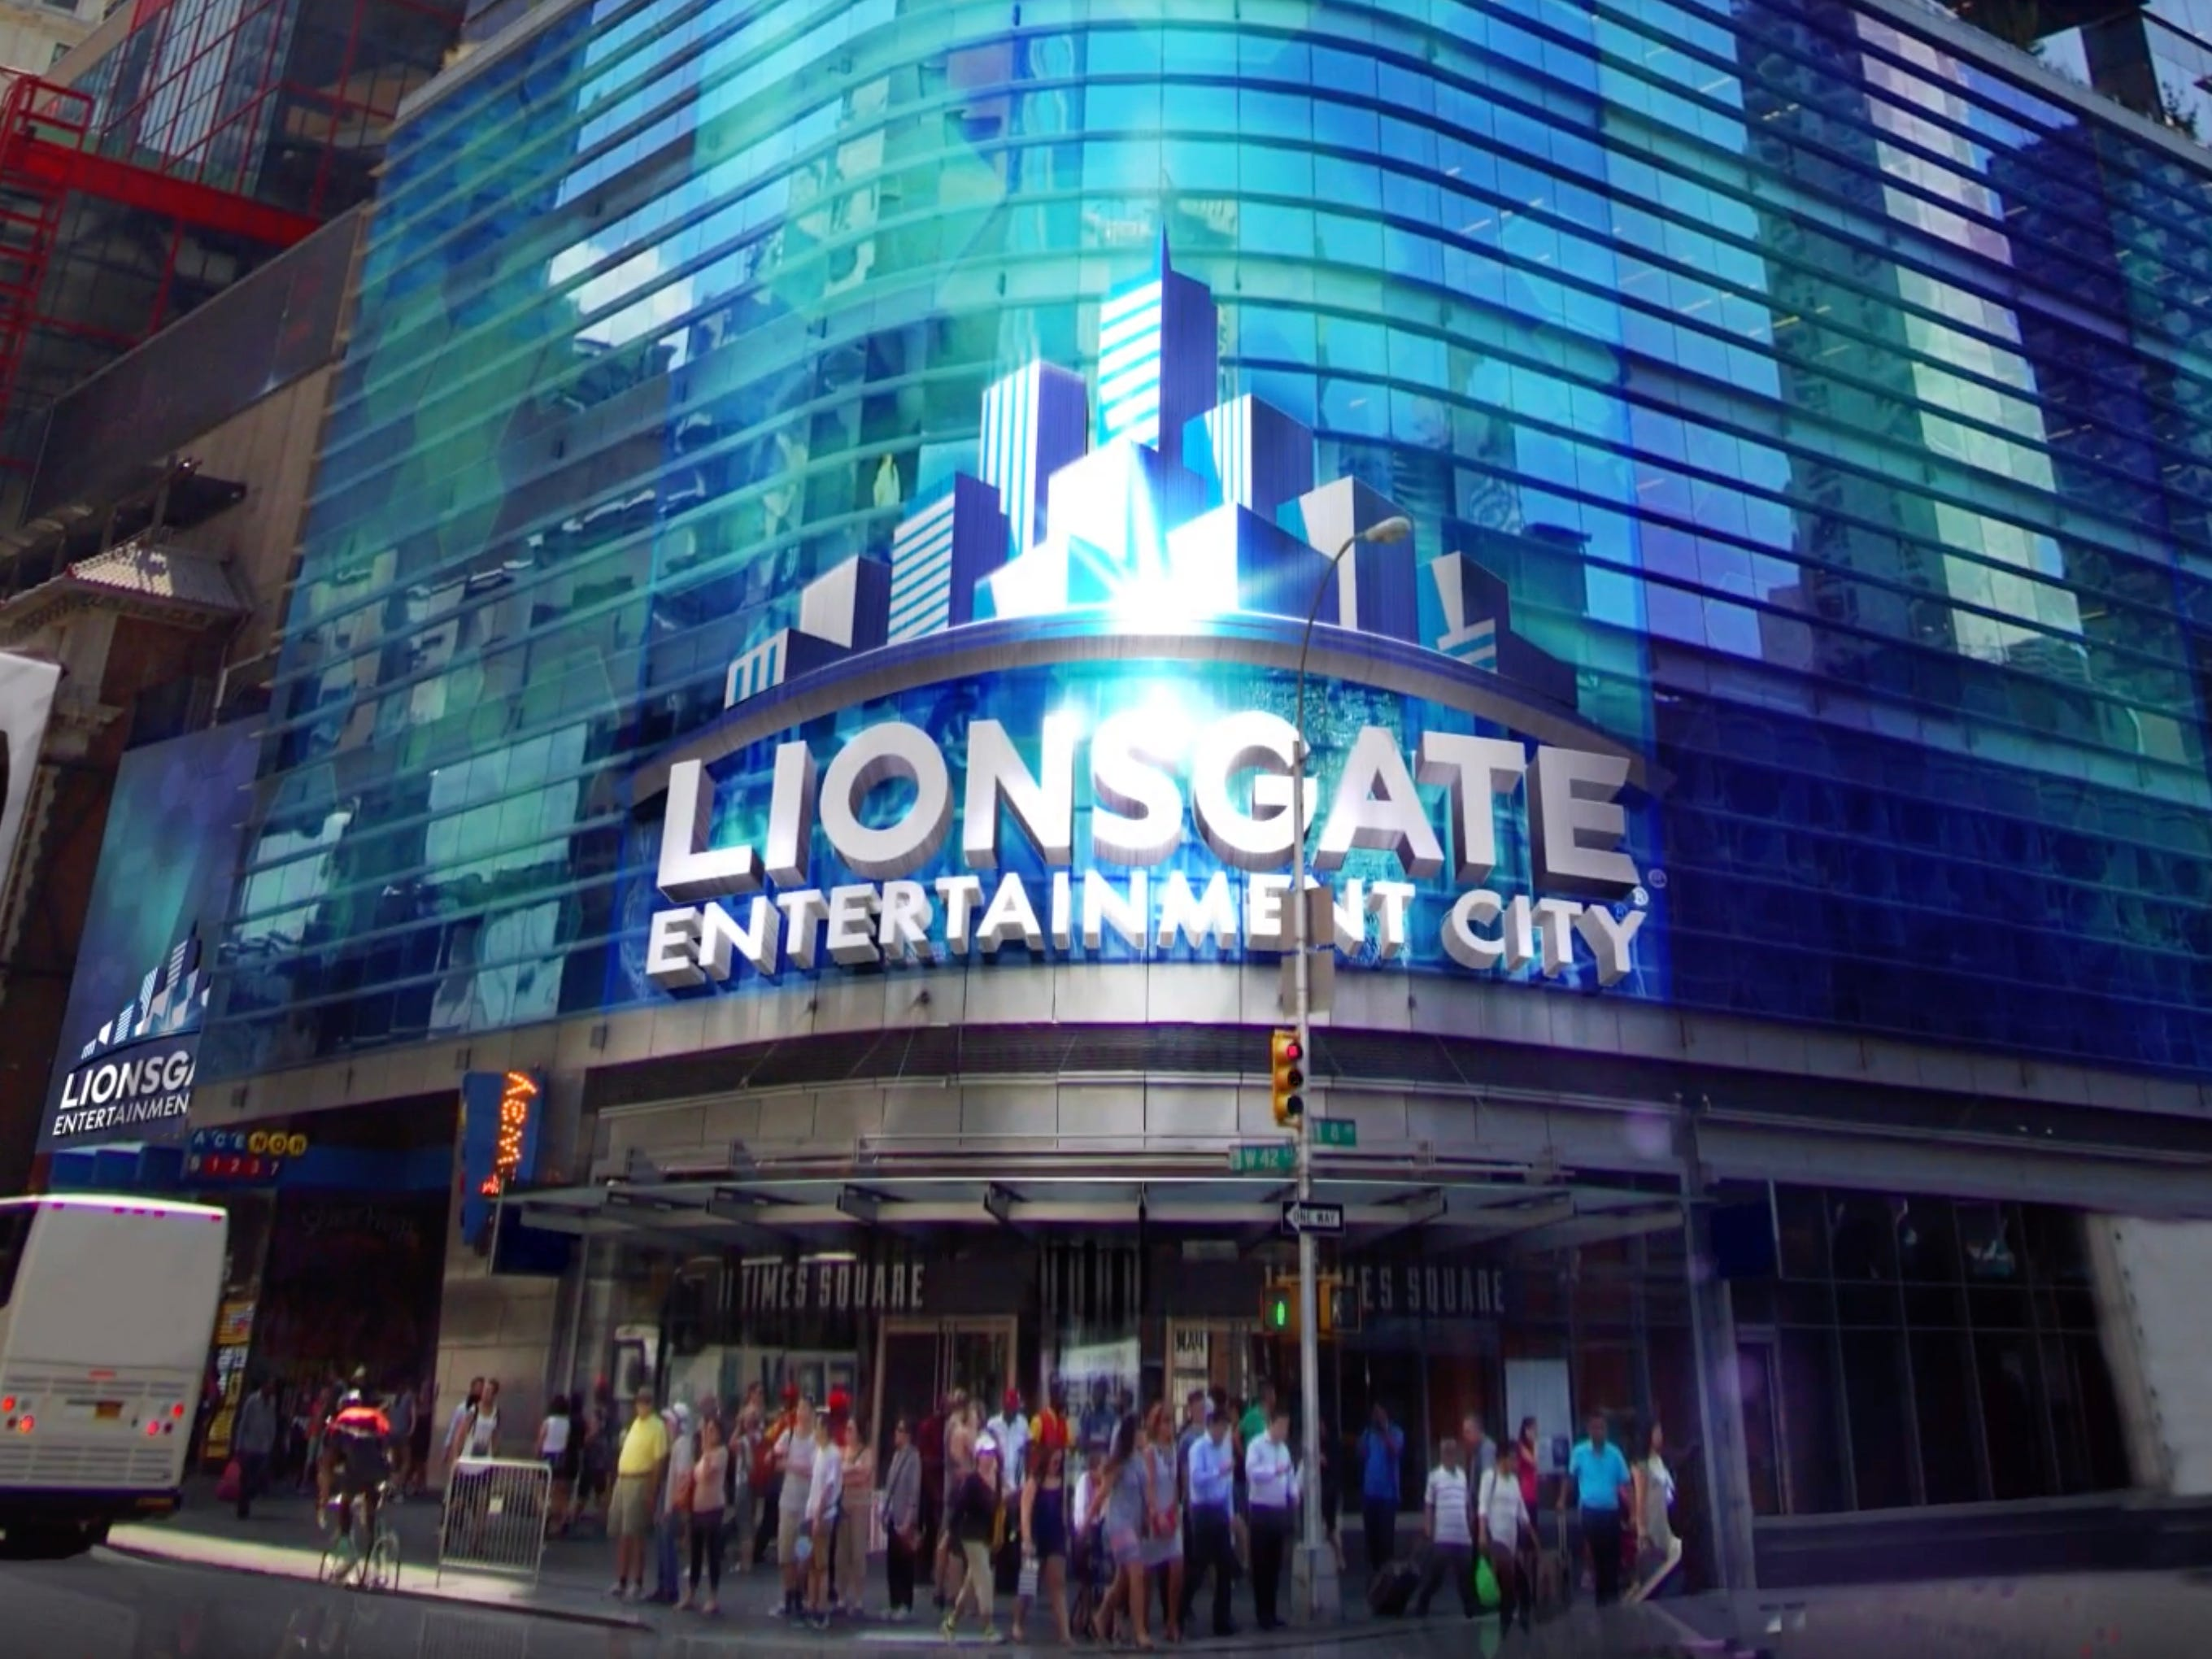 """Lionsgate Entertainment City in New York City's Times Square will present experiences based on the movie studio's films and television shows such as """"Divergent,"""" """"Gods of Egypt"""" and """"Ash vs Evil Dead."""""""